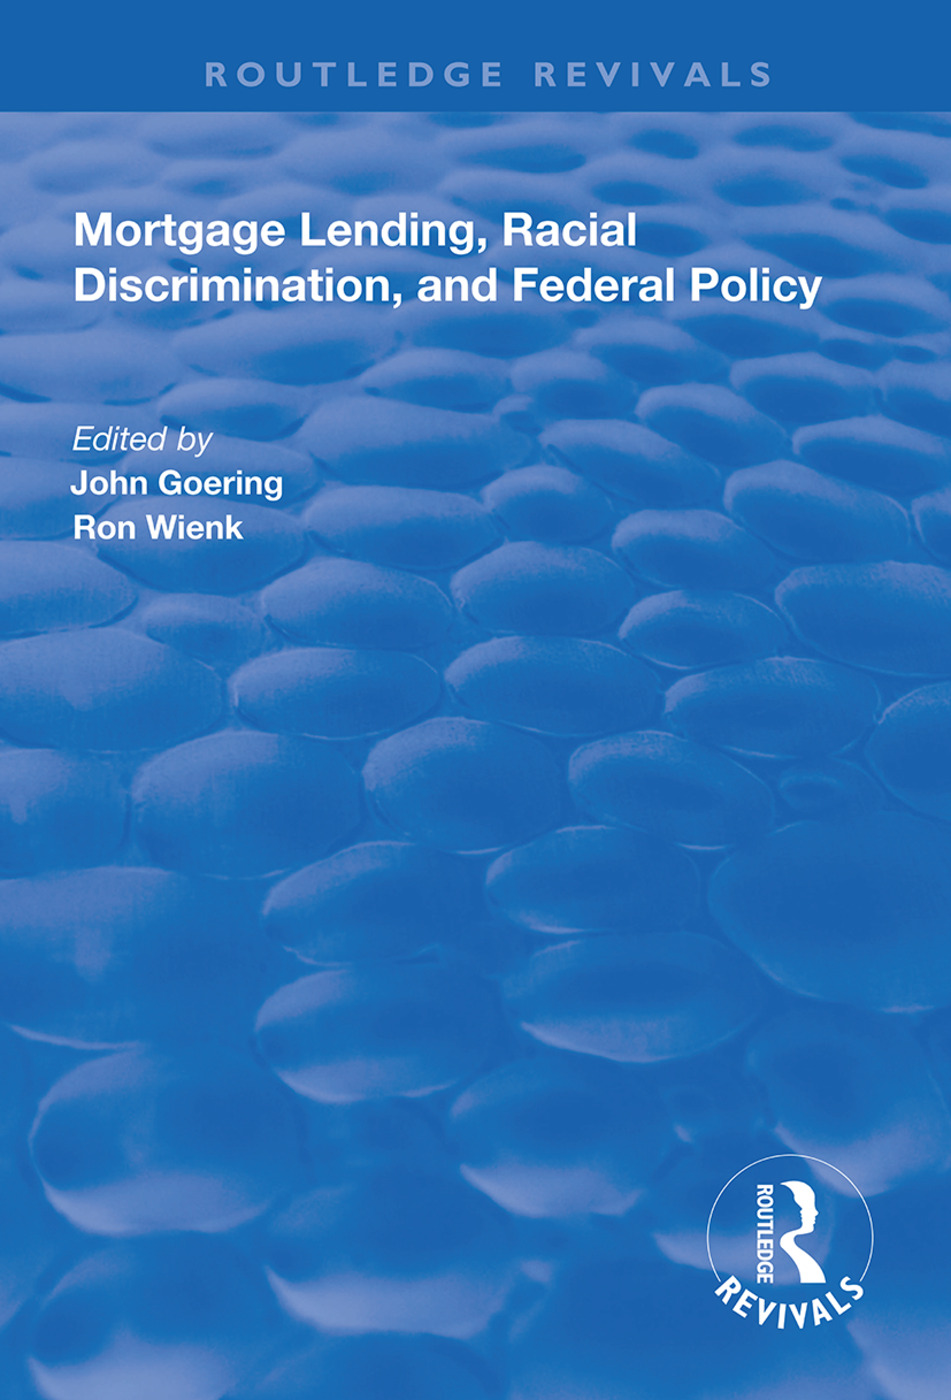 Mortgage Lending, Racial Discrimination and Federal Policy